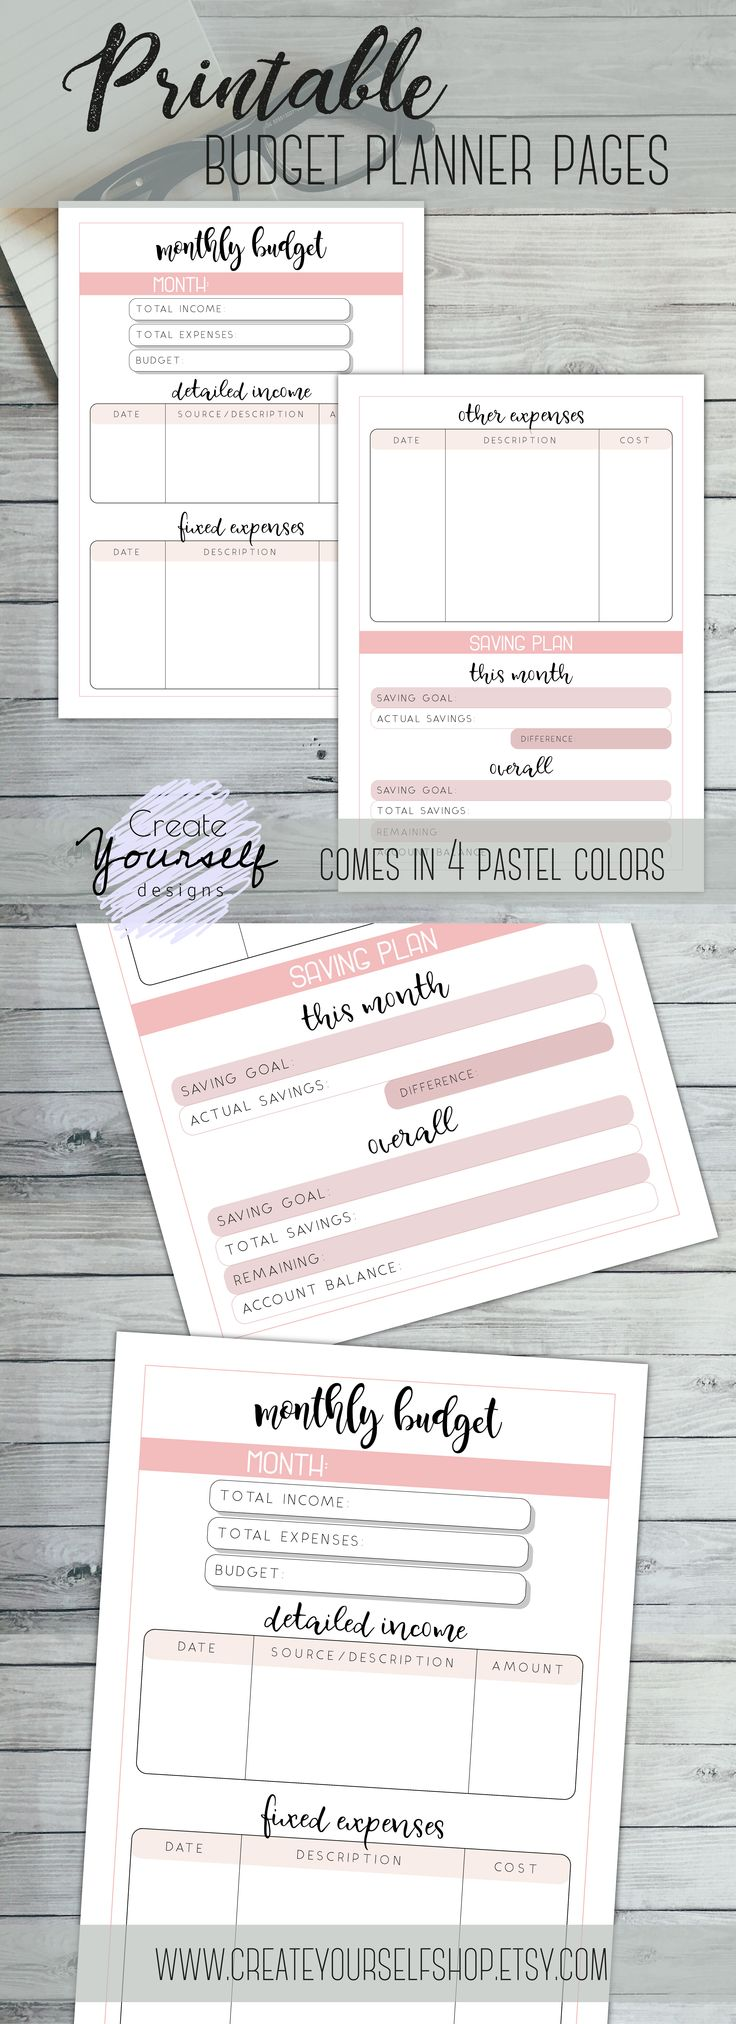 New monthly budget planner printable just got listed. Comes in 4 pastel colors and 3 sizes!